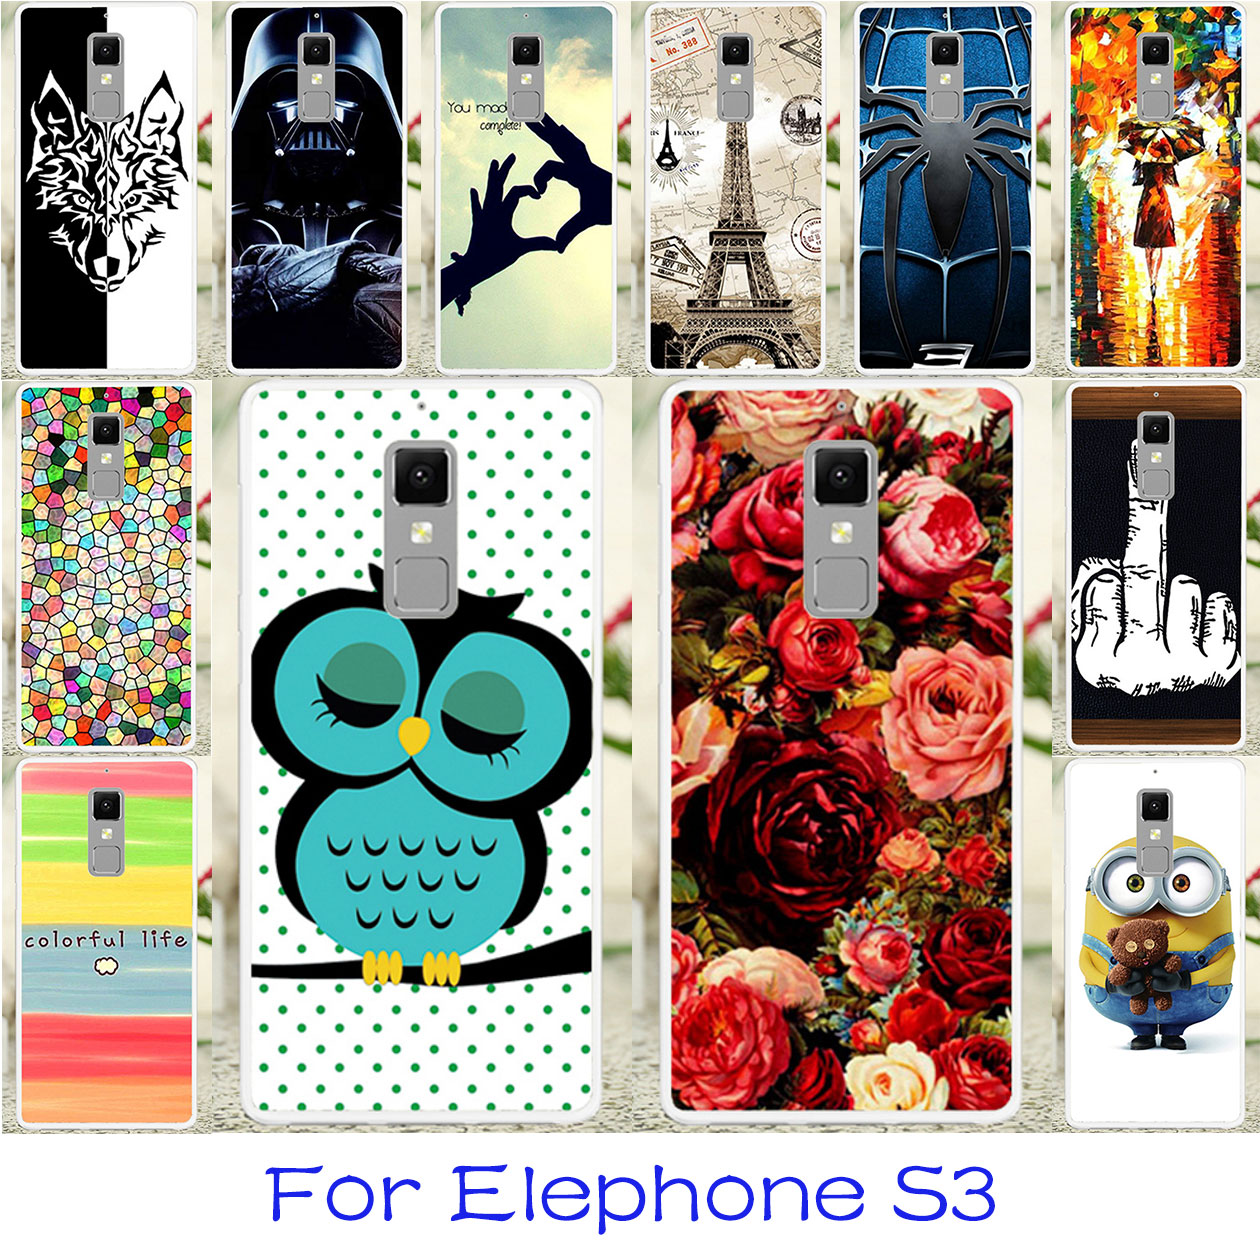 TAOYUNXI Silicon Phone Cases Elephone S3 5.2 Inch Bag Covers Flexible Back Coque Elephone S3 Housing Cover Skin Case